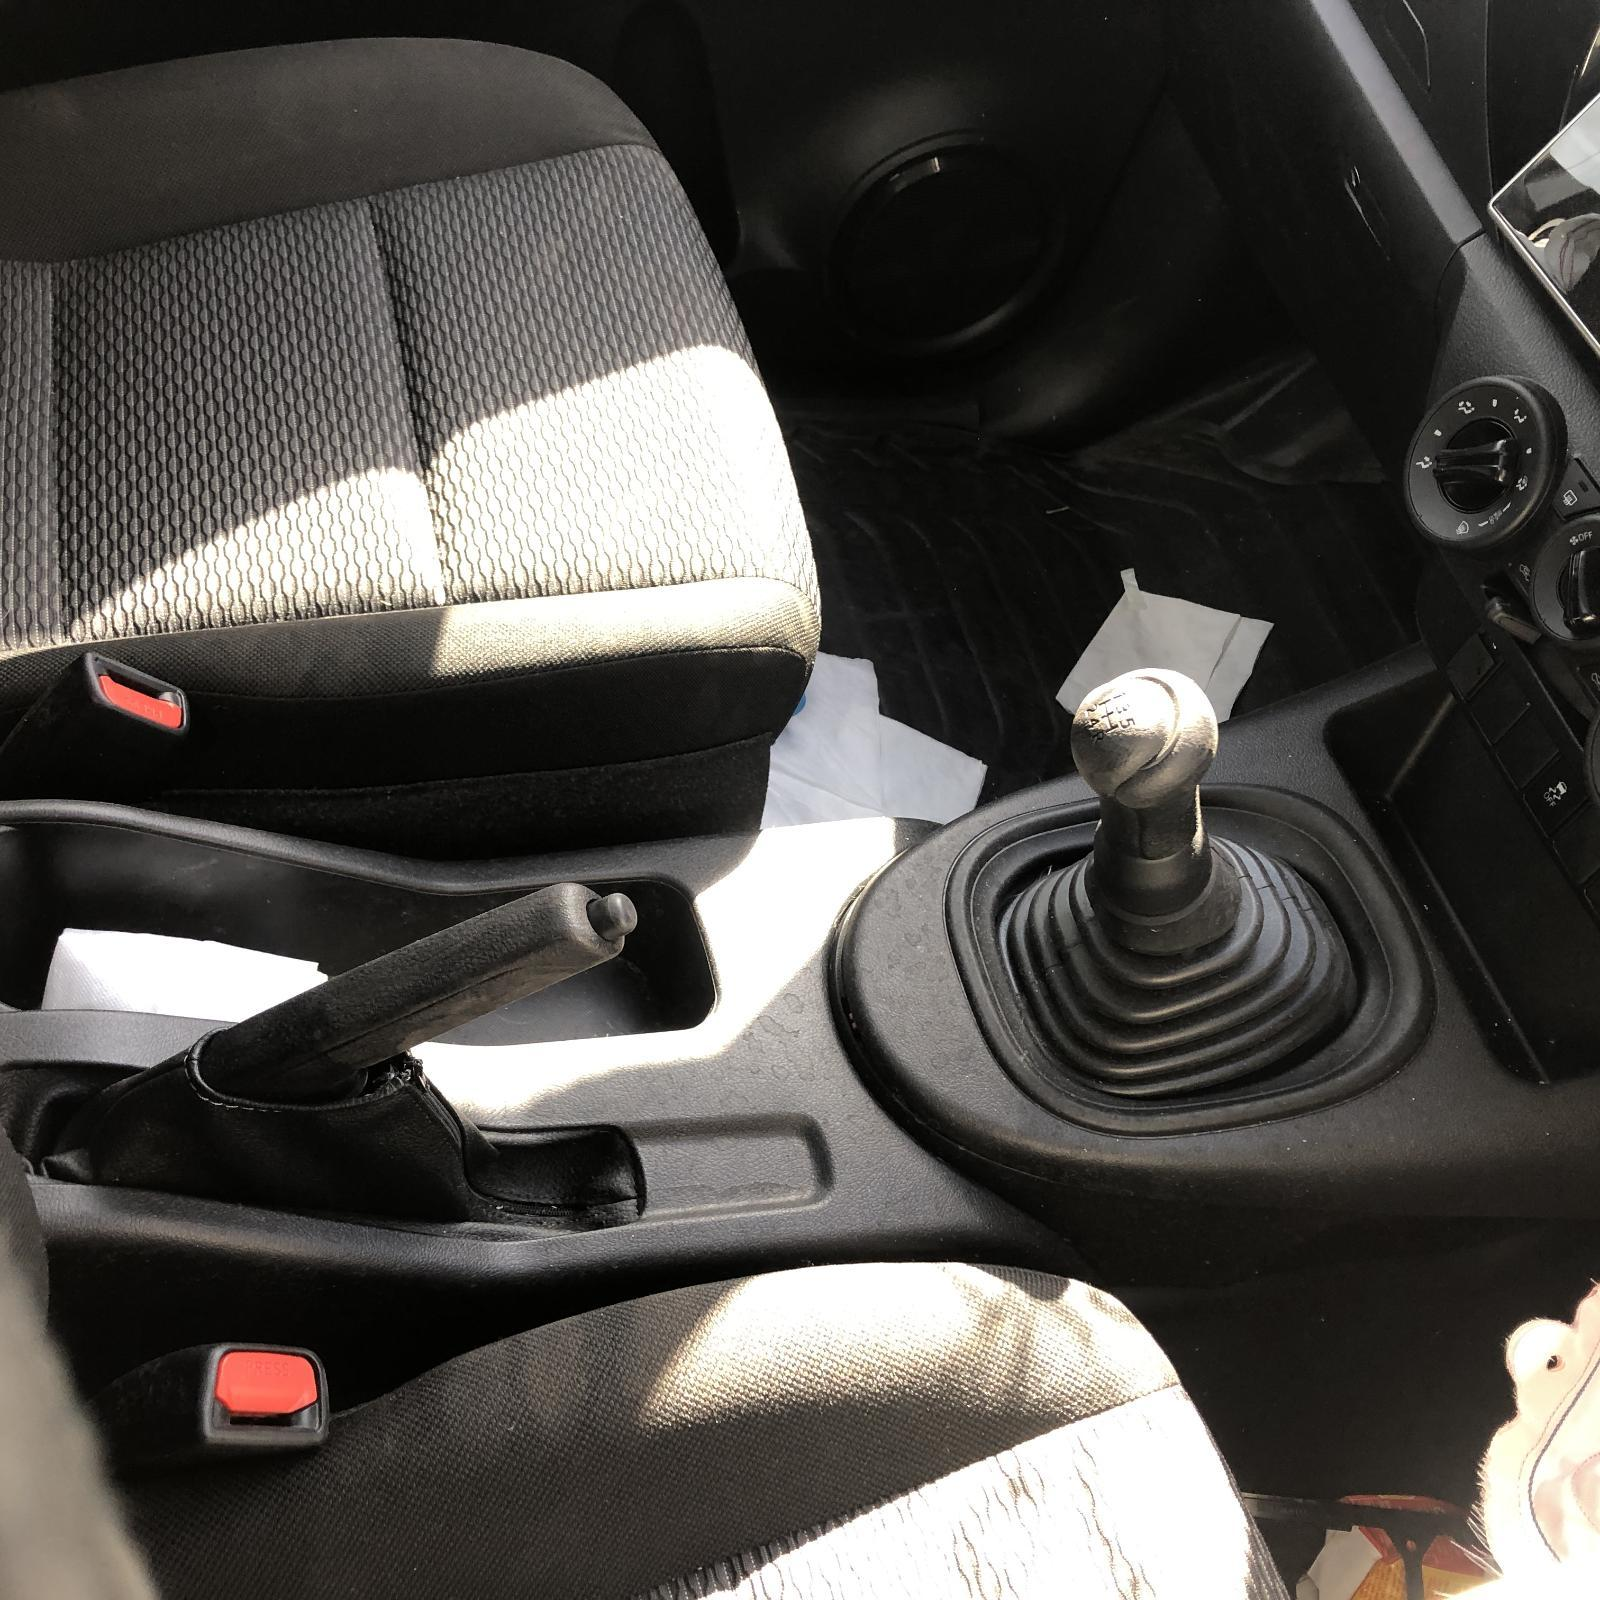 TOYOTA HILUX, Console, MANUAL T/M TYPE, 2WD, 09/15-